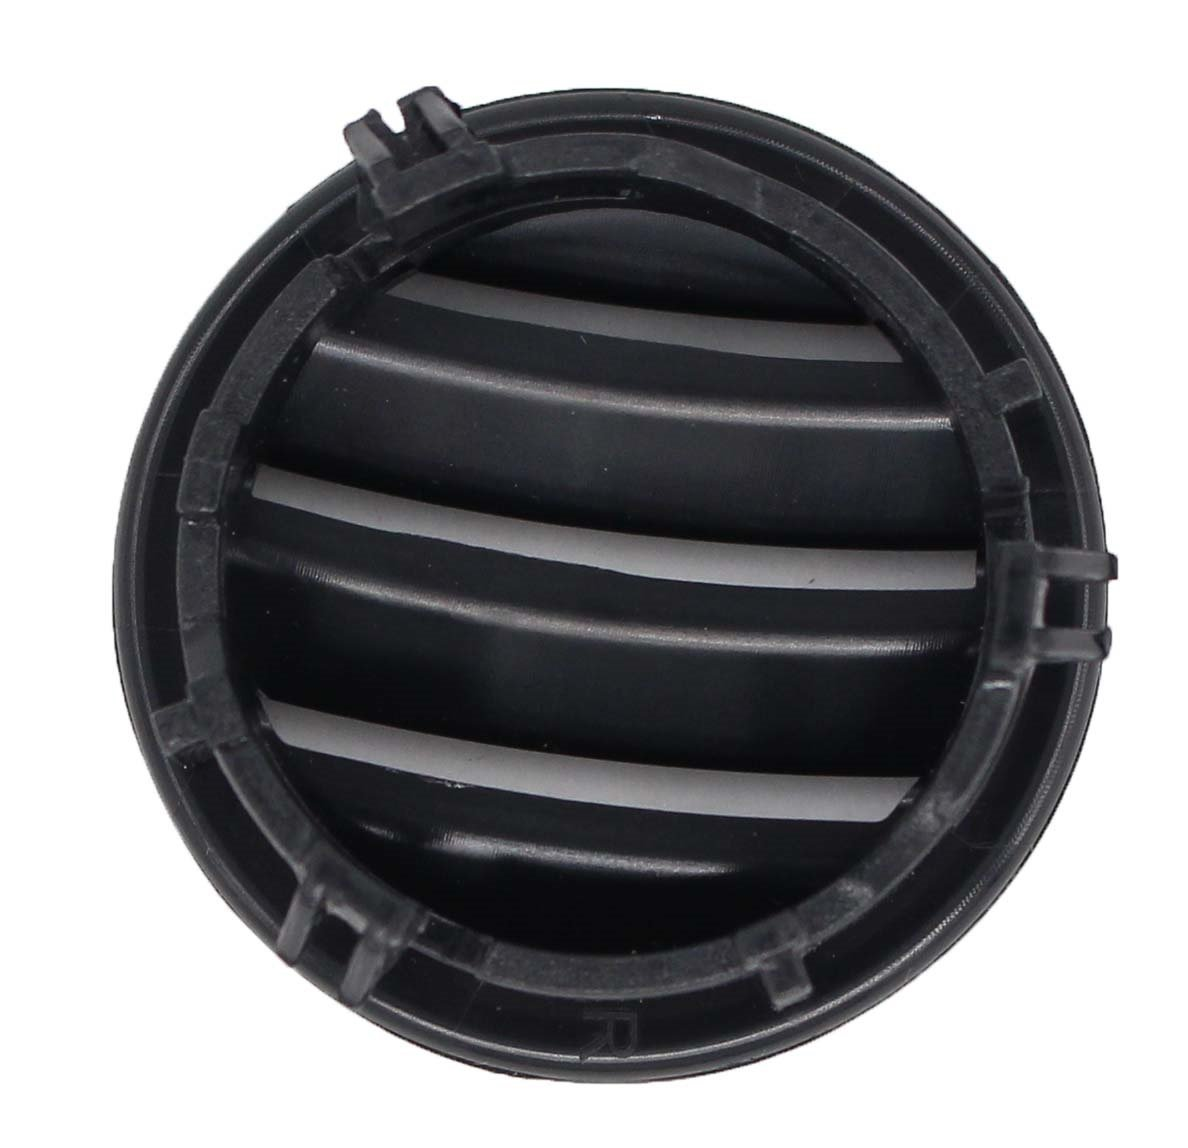 Right Air Ac Vent for Mercedes W204 C300 C350 C630 C-Class 2008 2009 2010 2011 Replace Part Number 2046805087 20468050879G71 2046804987 20468049877L9